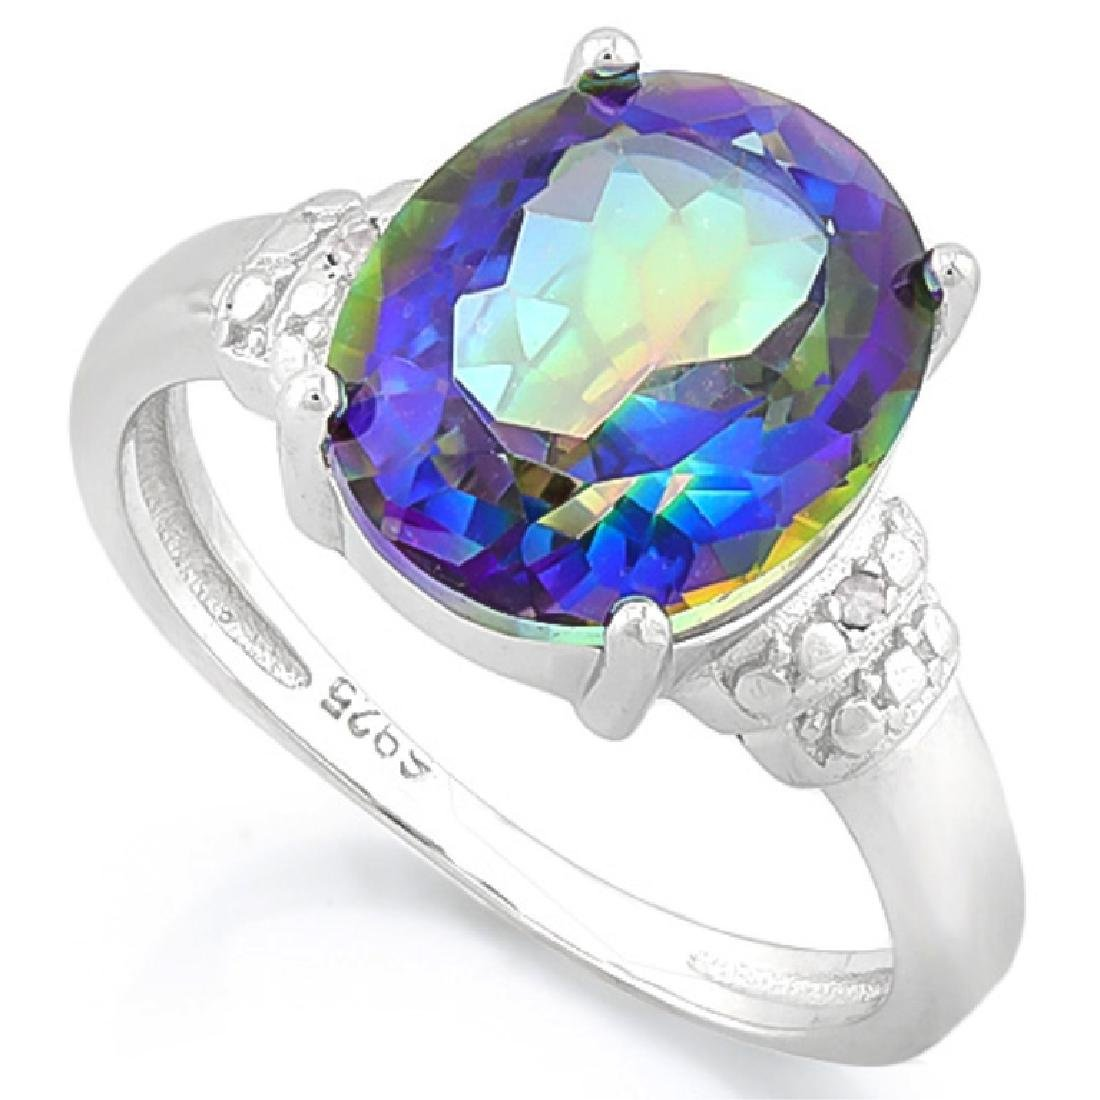 STUNNING 3CT OCEAN MYSTIC TOPAZ OVAL SET RING